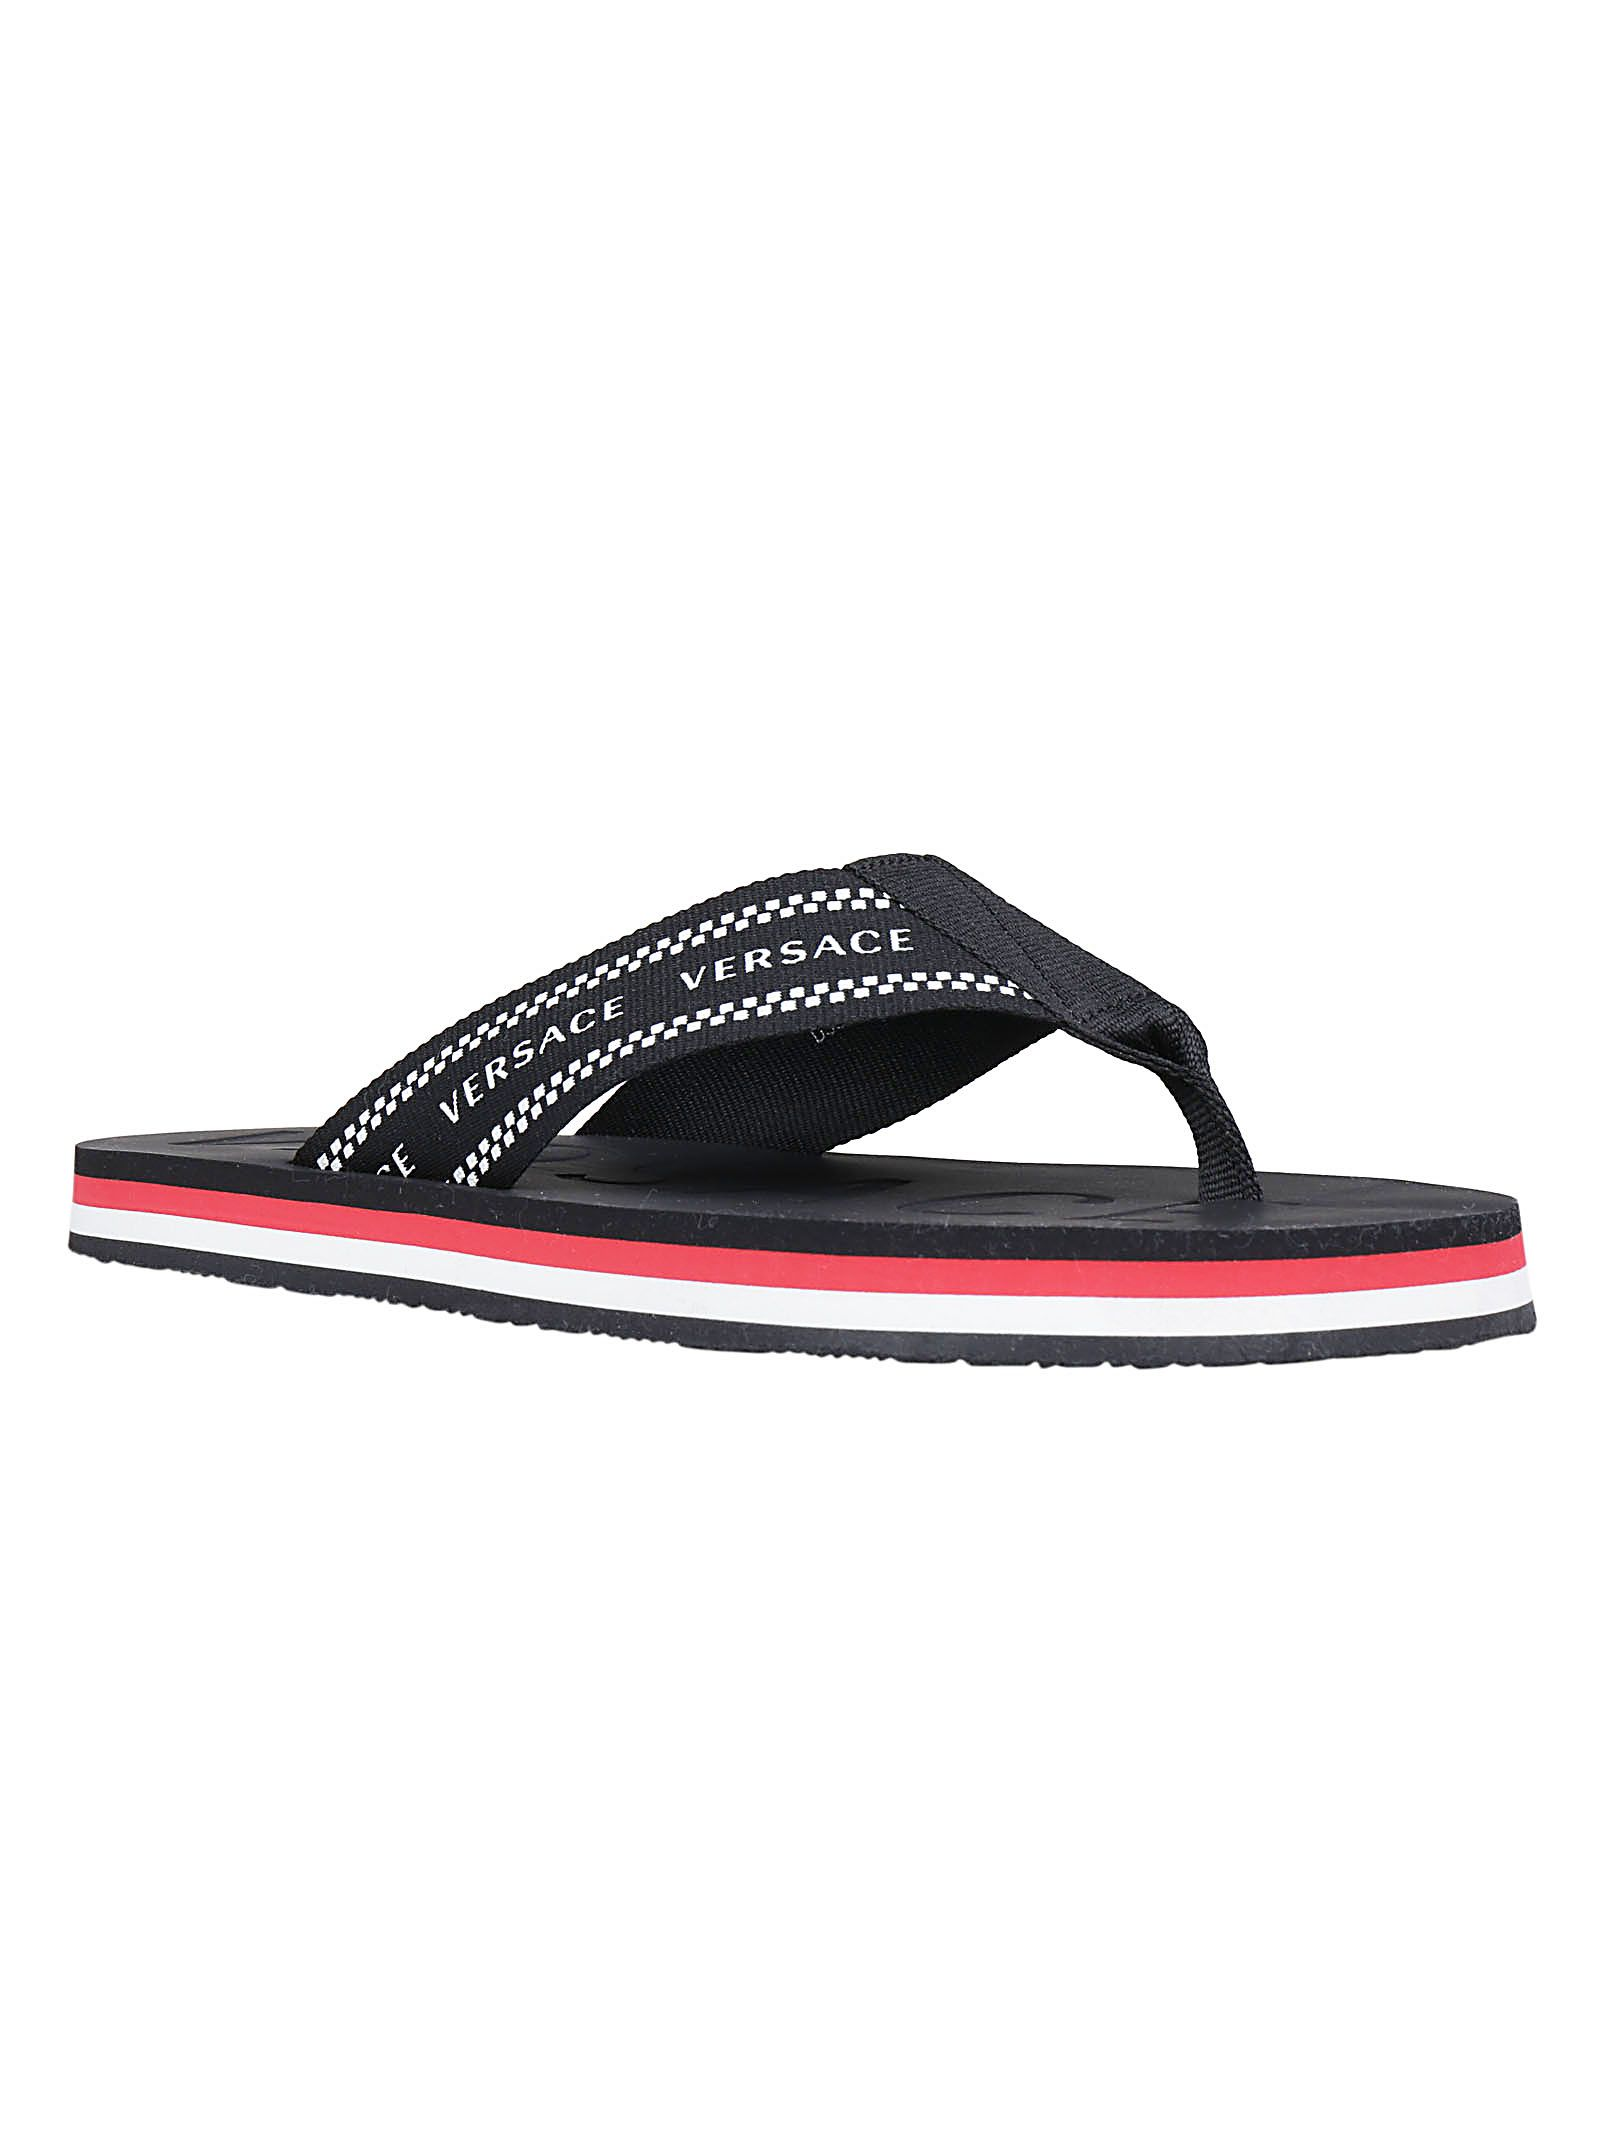 a35af65fe Versace Sandals - Multi rosso Versace Sandals - Multi rosso ...